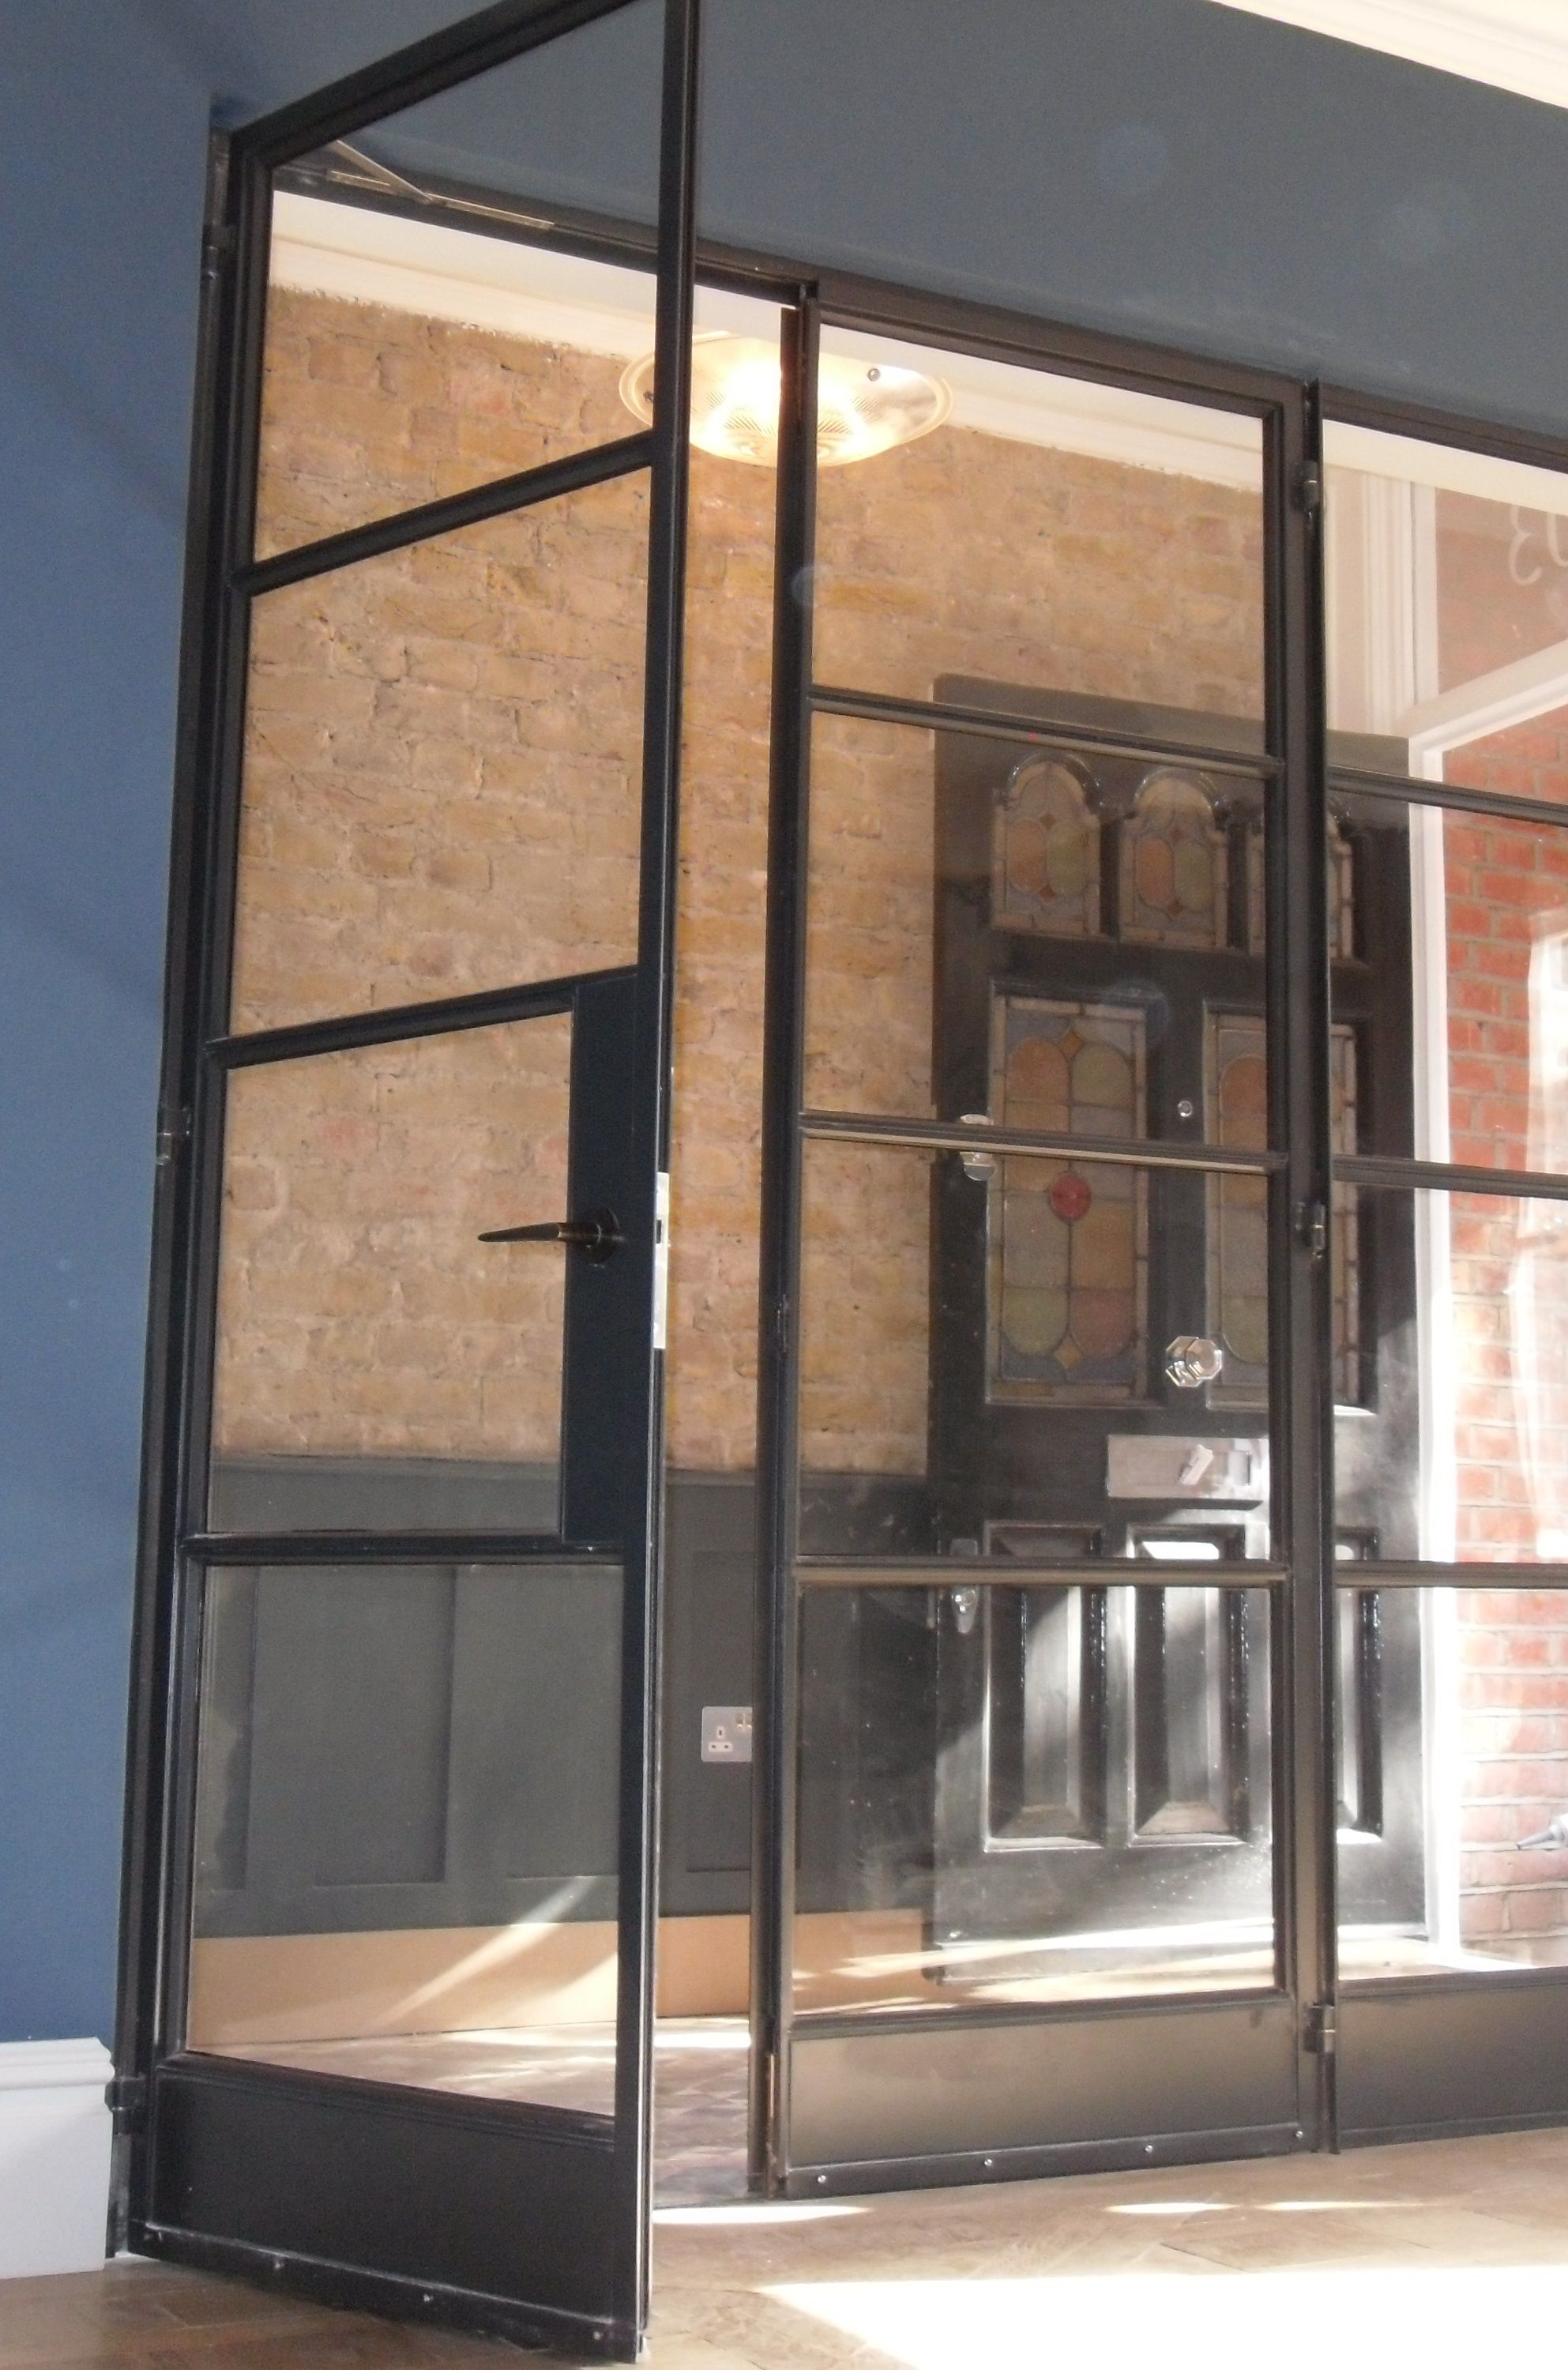 Crittall Door Screen By Lightfoot Windows Kent Ltd Separating The Grand Entrance Hall From